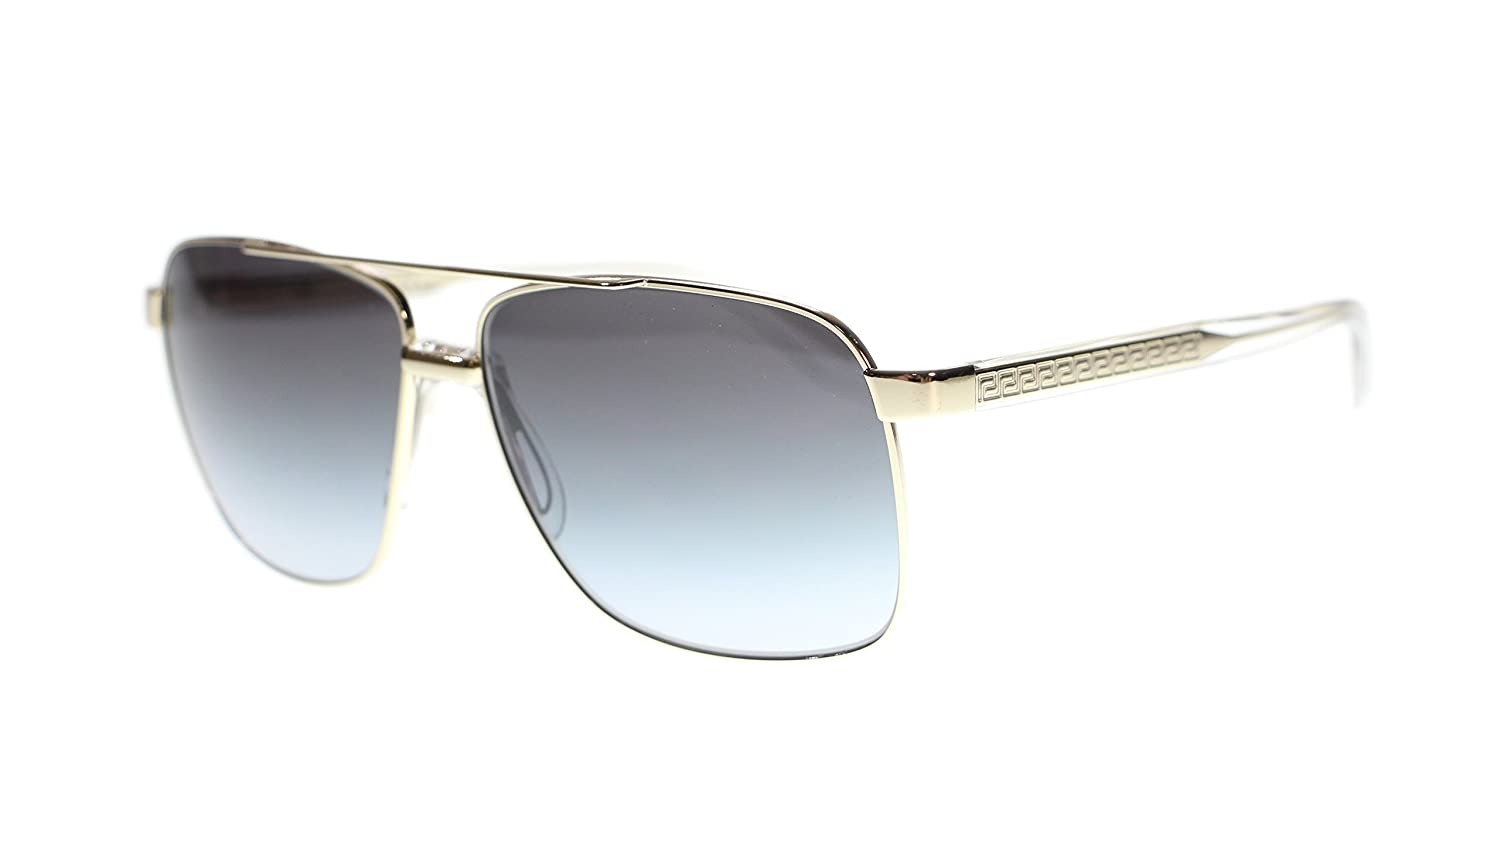 63cd6a36ed Versace Mens Sunglasses VE2174 12528G Pale Gold Grey Lens Square 59mm  Authentic  Amazon.ca  Clothing   Accessories